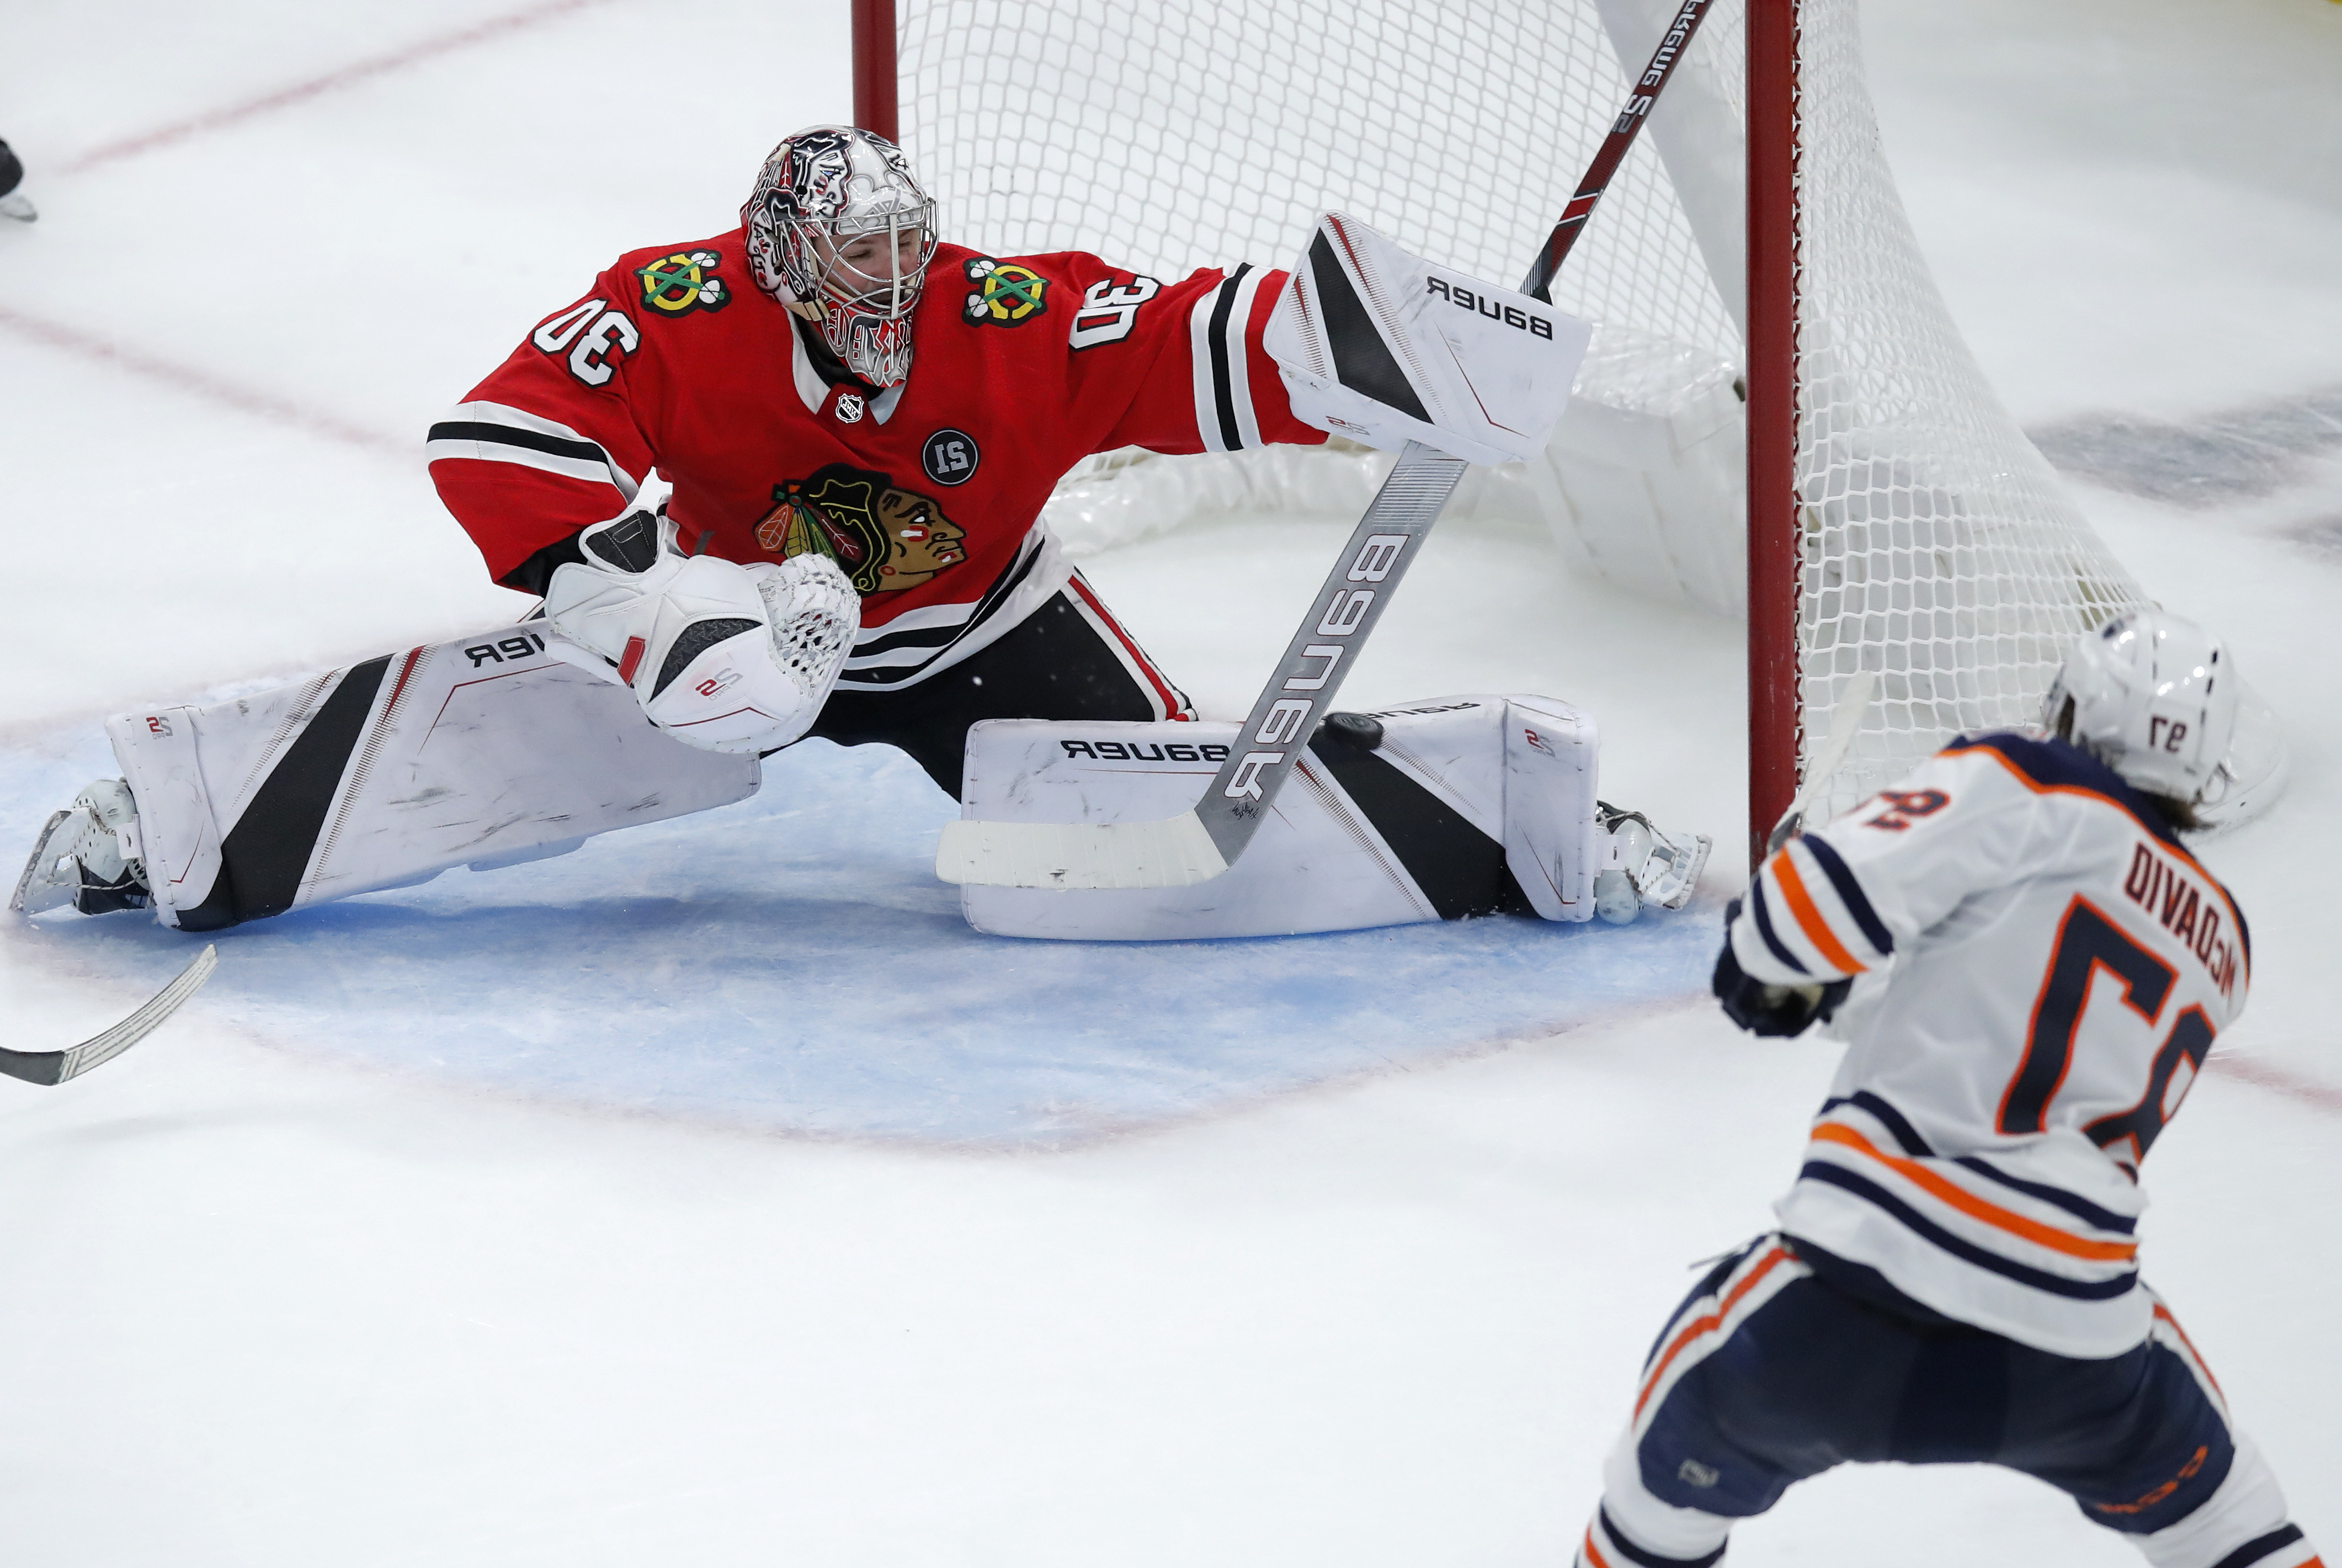 McDavid's OT goal gives Oilers 2-1 win over Blackhawks